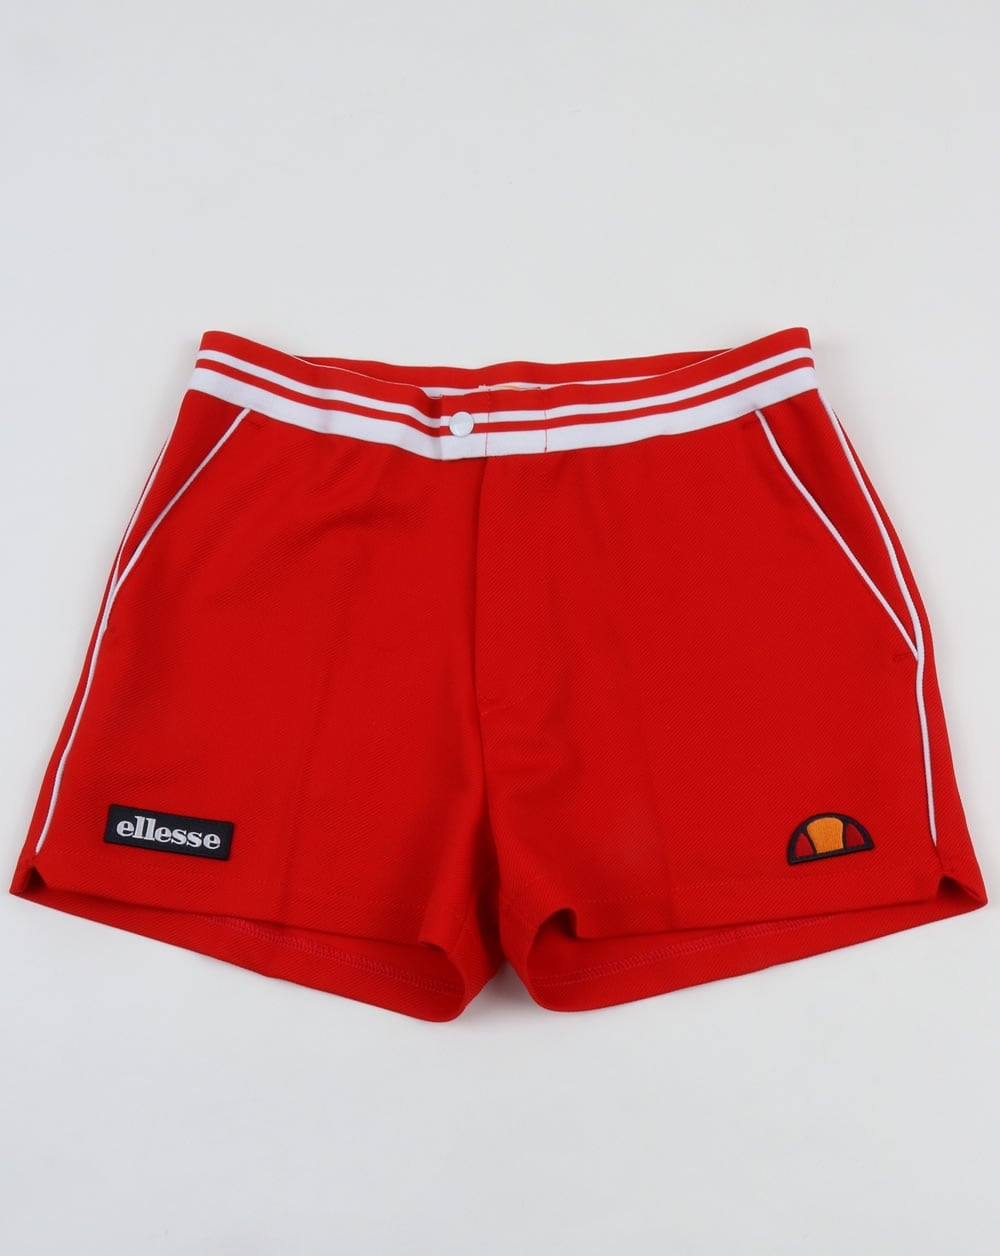 Buy Here Pay Here Ma >> Ellesse Tortoreto Shorts Scarlet Red,piping,business,joey essex